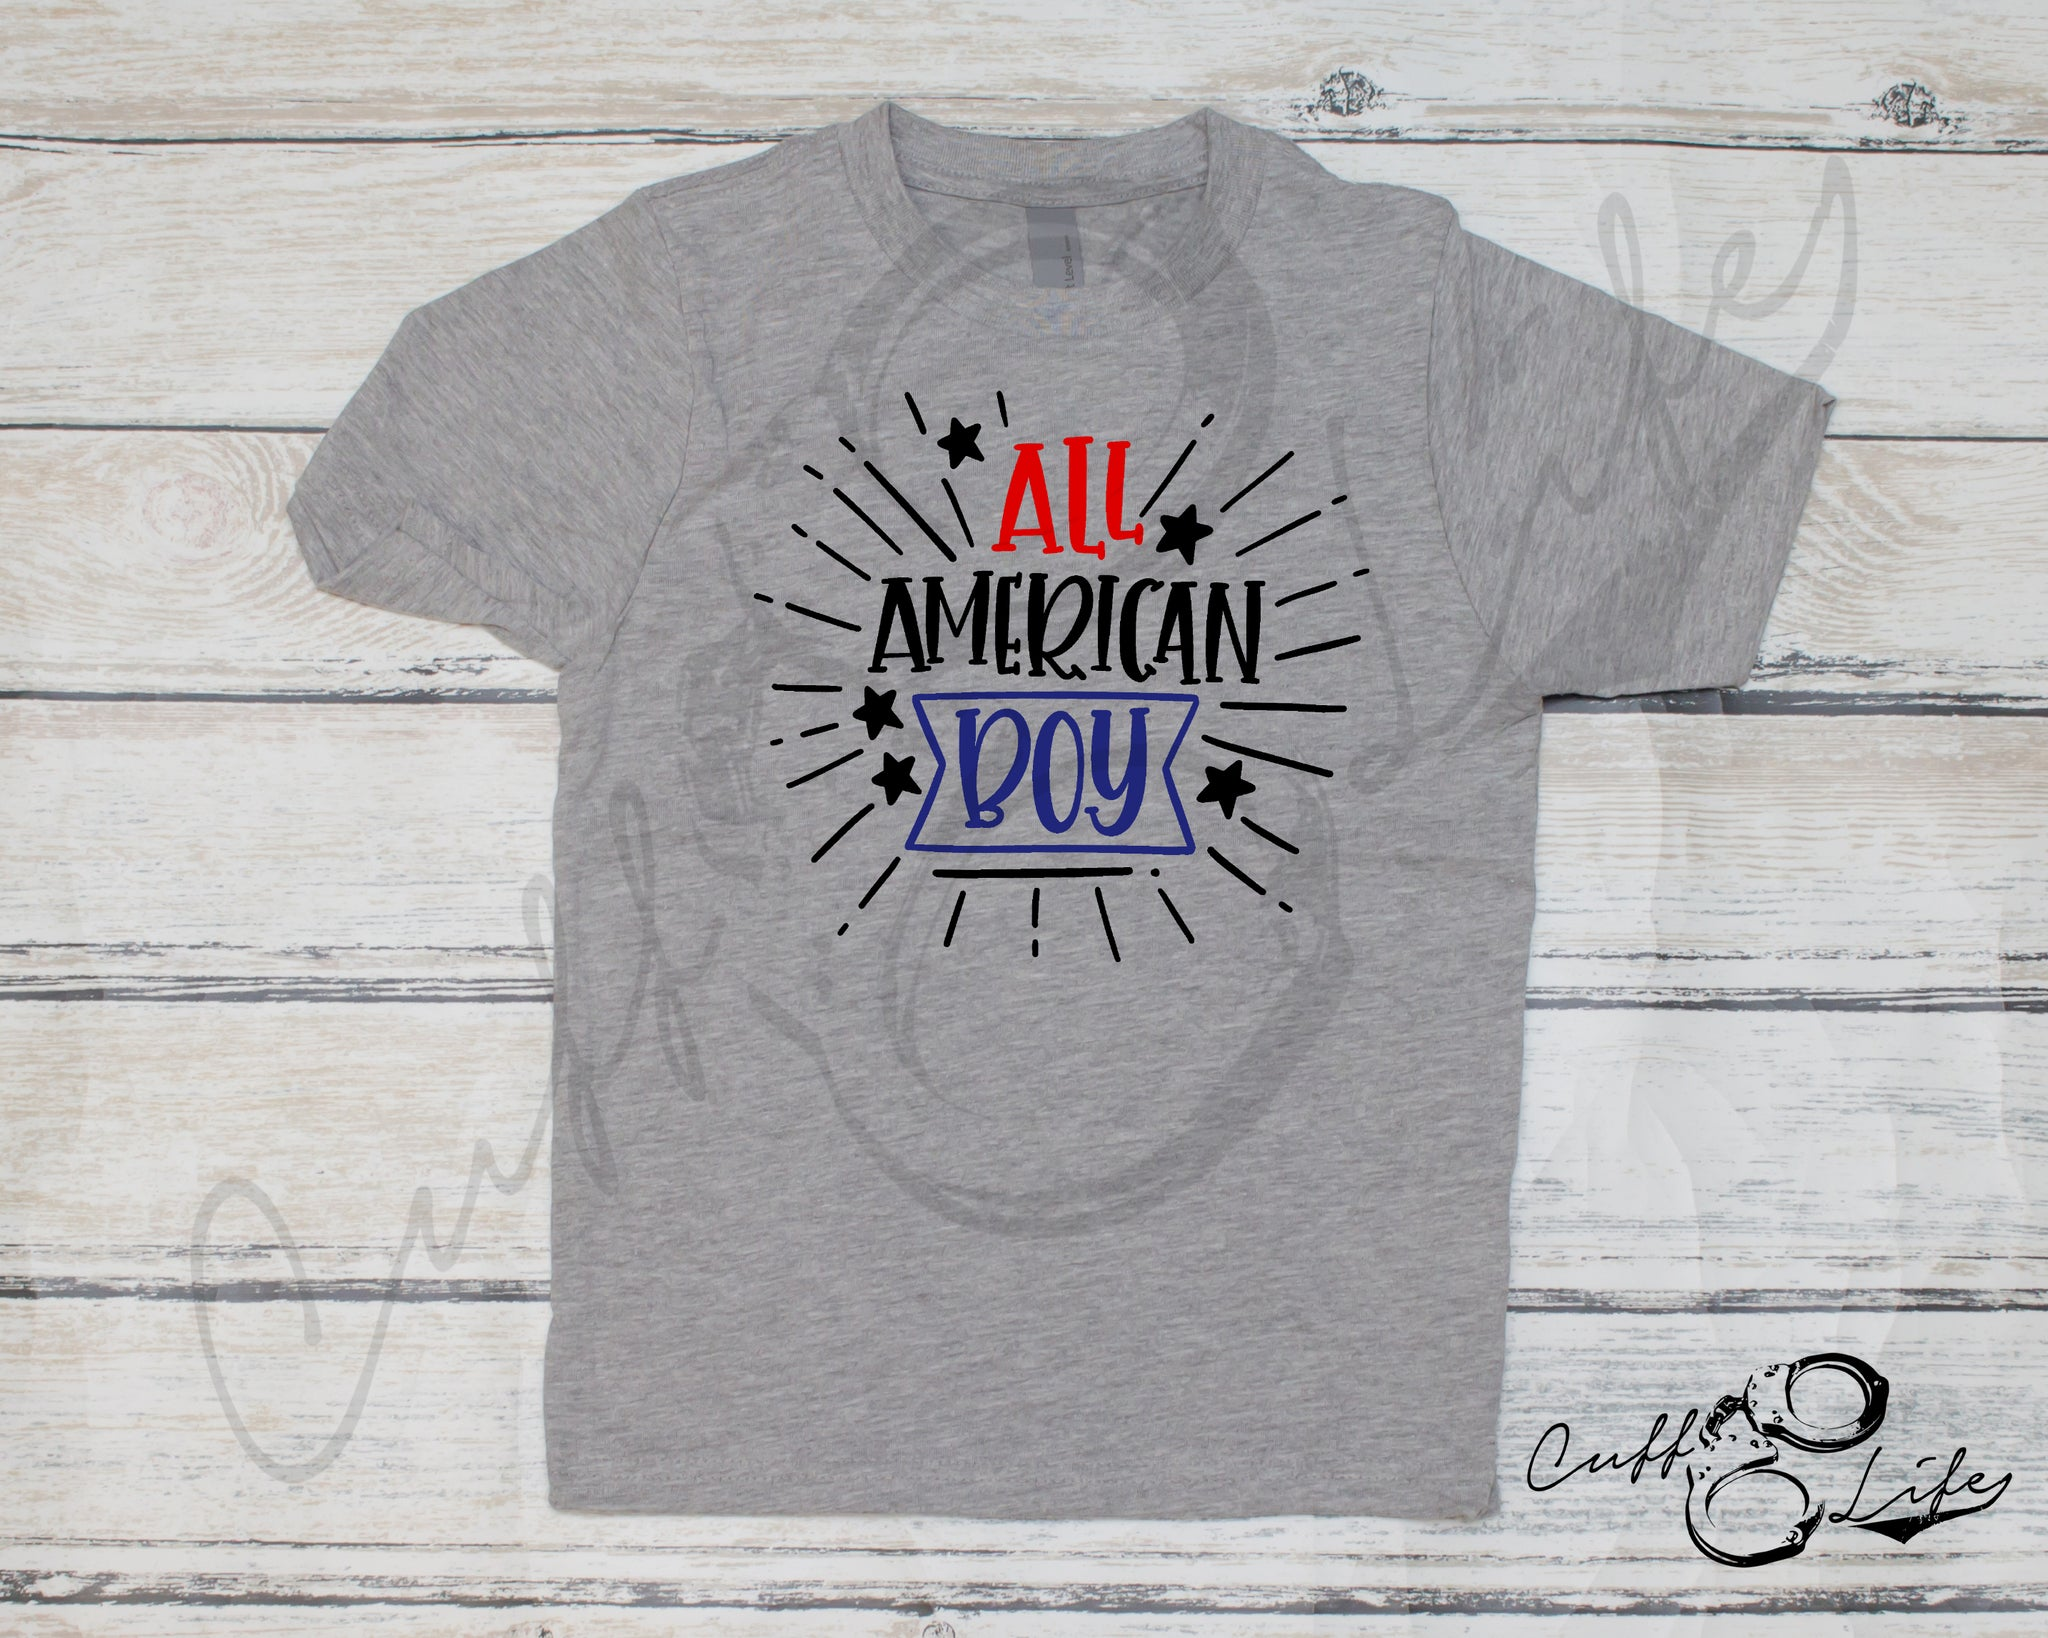 All American Boy - Toddler/Youth T-Shirt